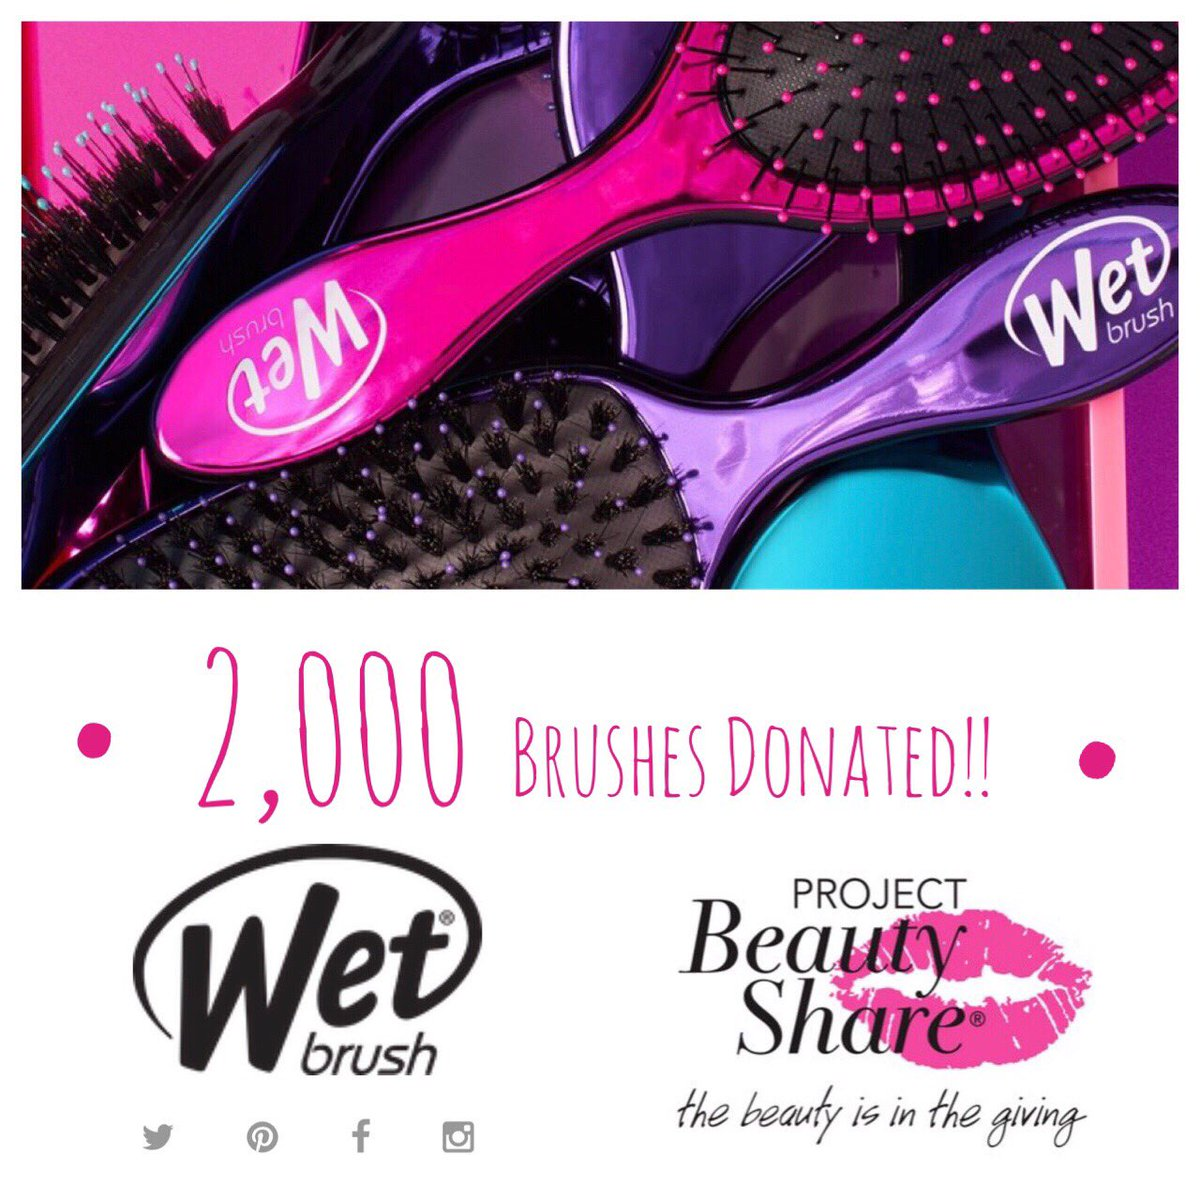 As @ProjBeautyShare's Love Your Hair Day gets closer, we are excited to share @TheWetBrush has donated 2,000 brushes to be distributed to our shelters at the event!! #ThankYou!!  #thebeautyisinthegiving #wetbrush #WetBrushGivesBack #donation #hair #confidence #beauty https://t.co/jOyAAa78cq